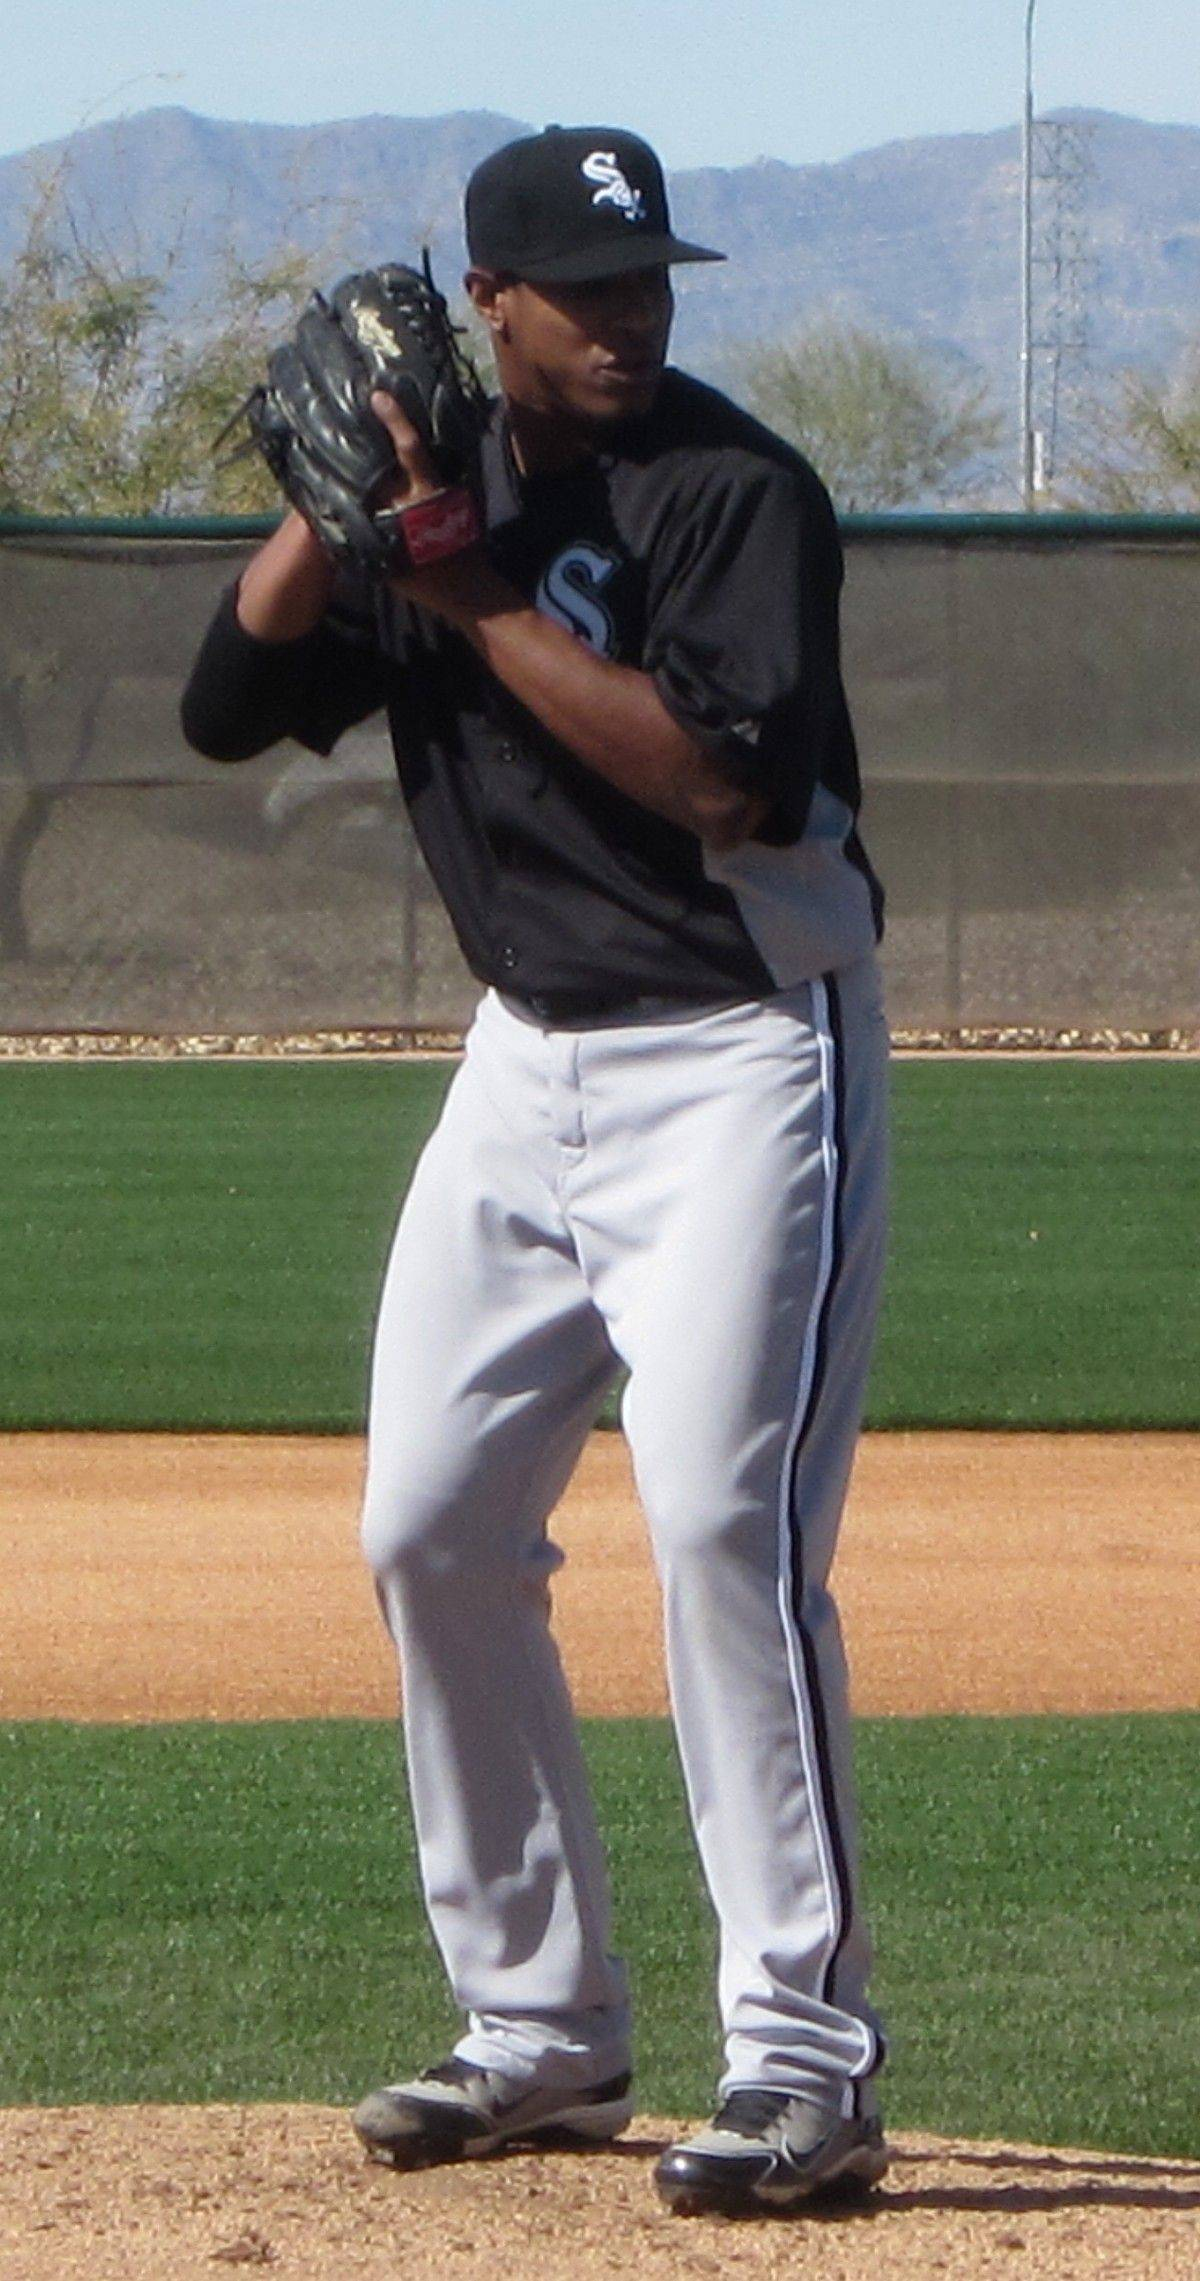 White Sox pitcher Edwin Jackson gets down to work Monday at the White Sox training facilities in Glendale, Ariz.